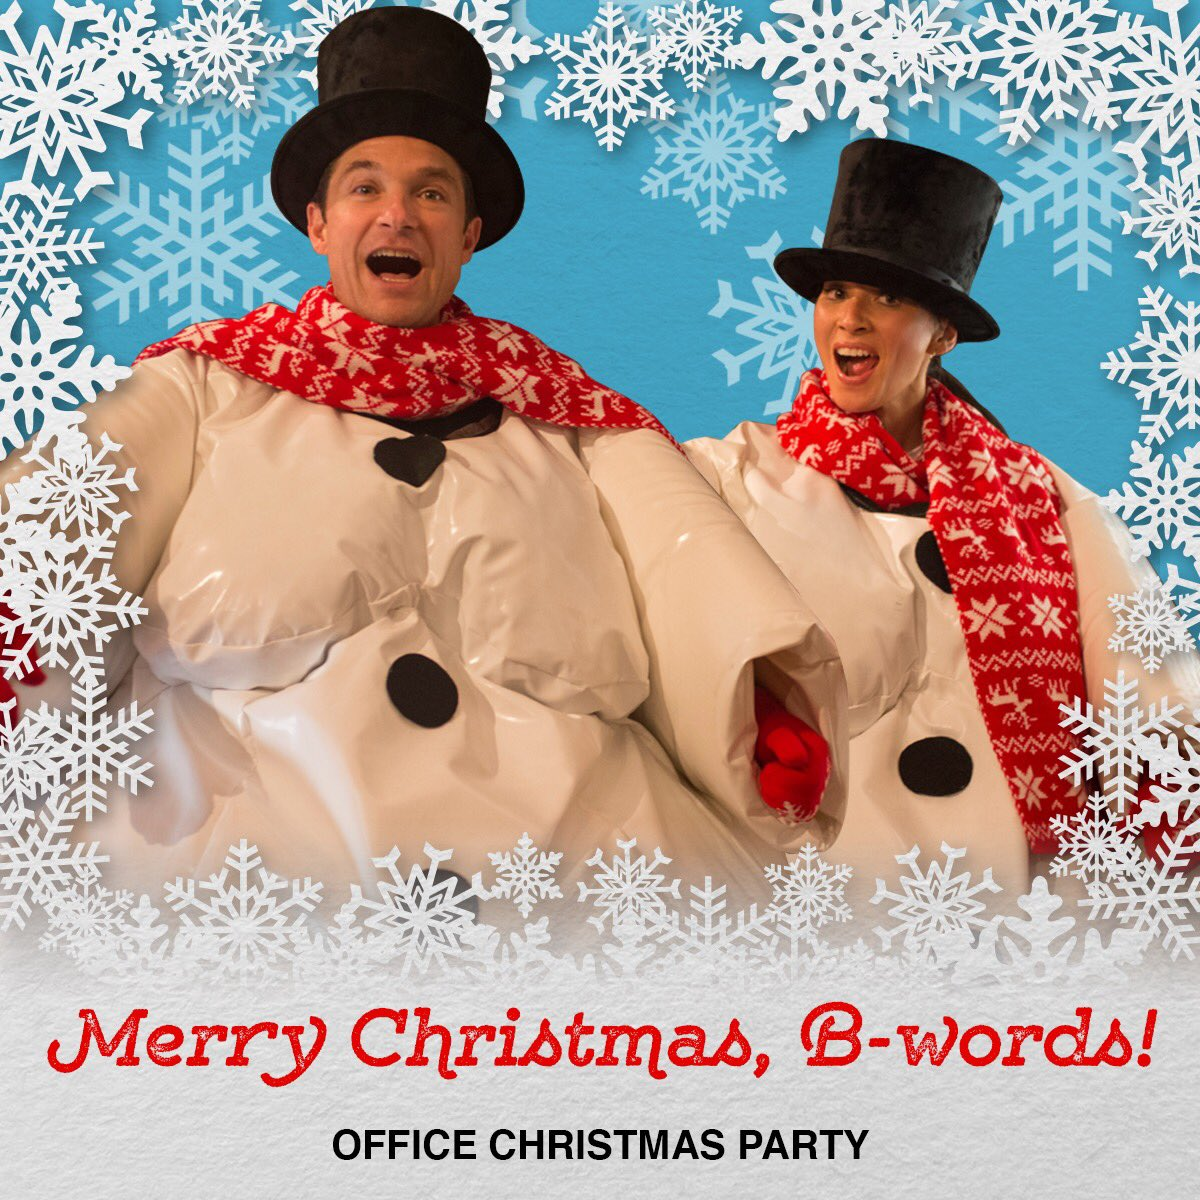 It's f-word Christmas. Last chance to send your favorite coworker a personalized Office Christmas Party e-card at https://t.co/eP8e2NJVRX! https://t.co/4KjYIv81jG